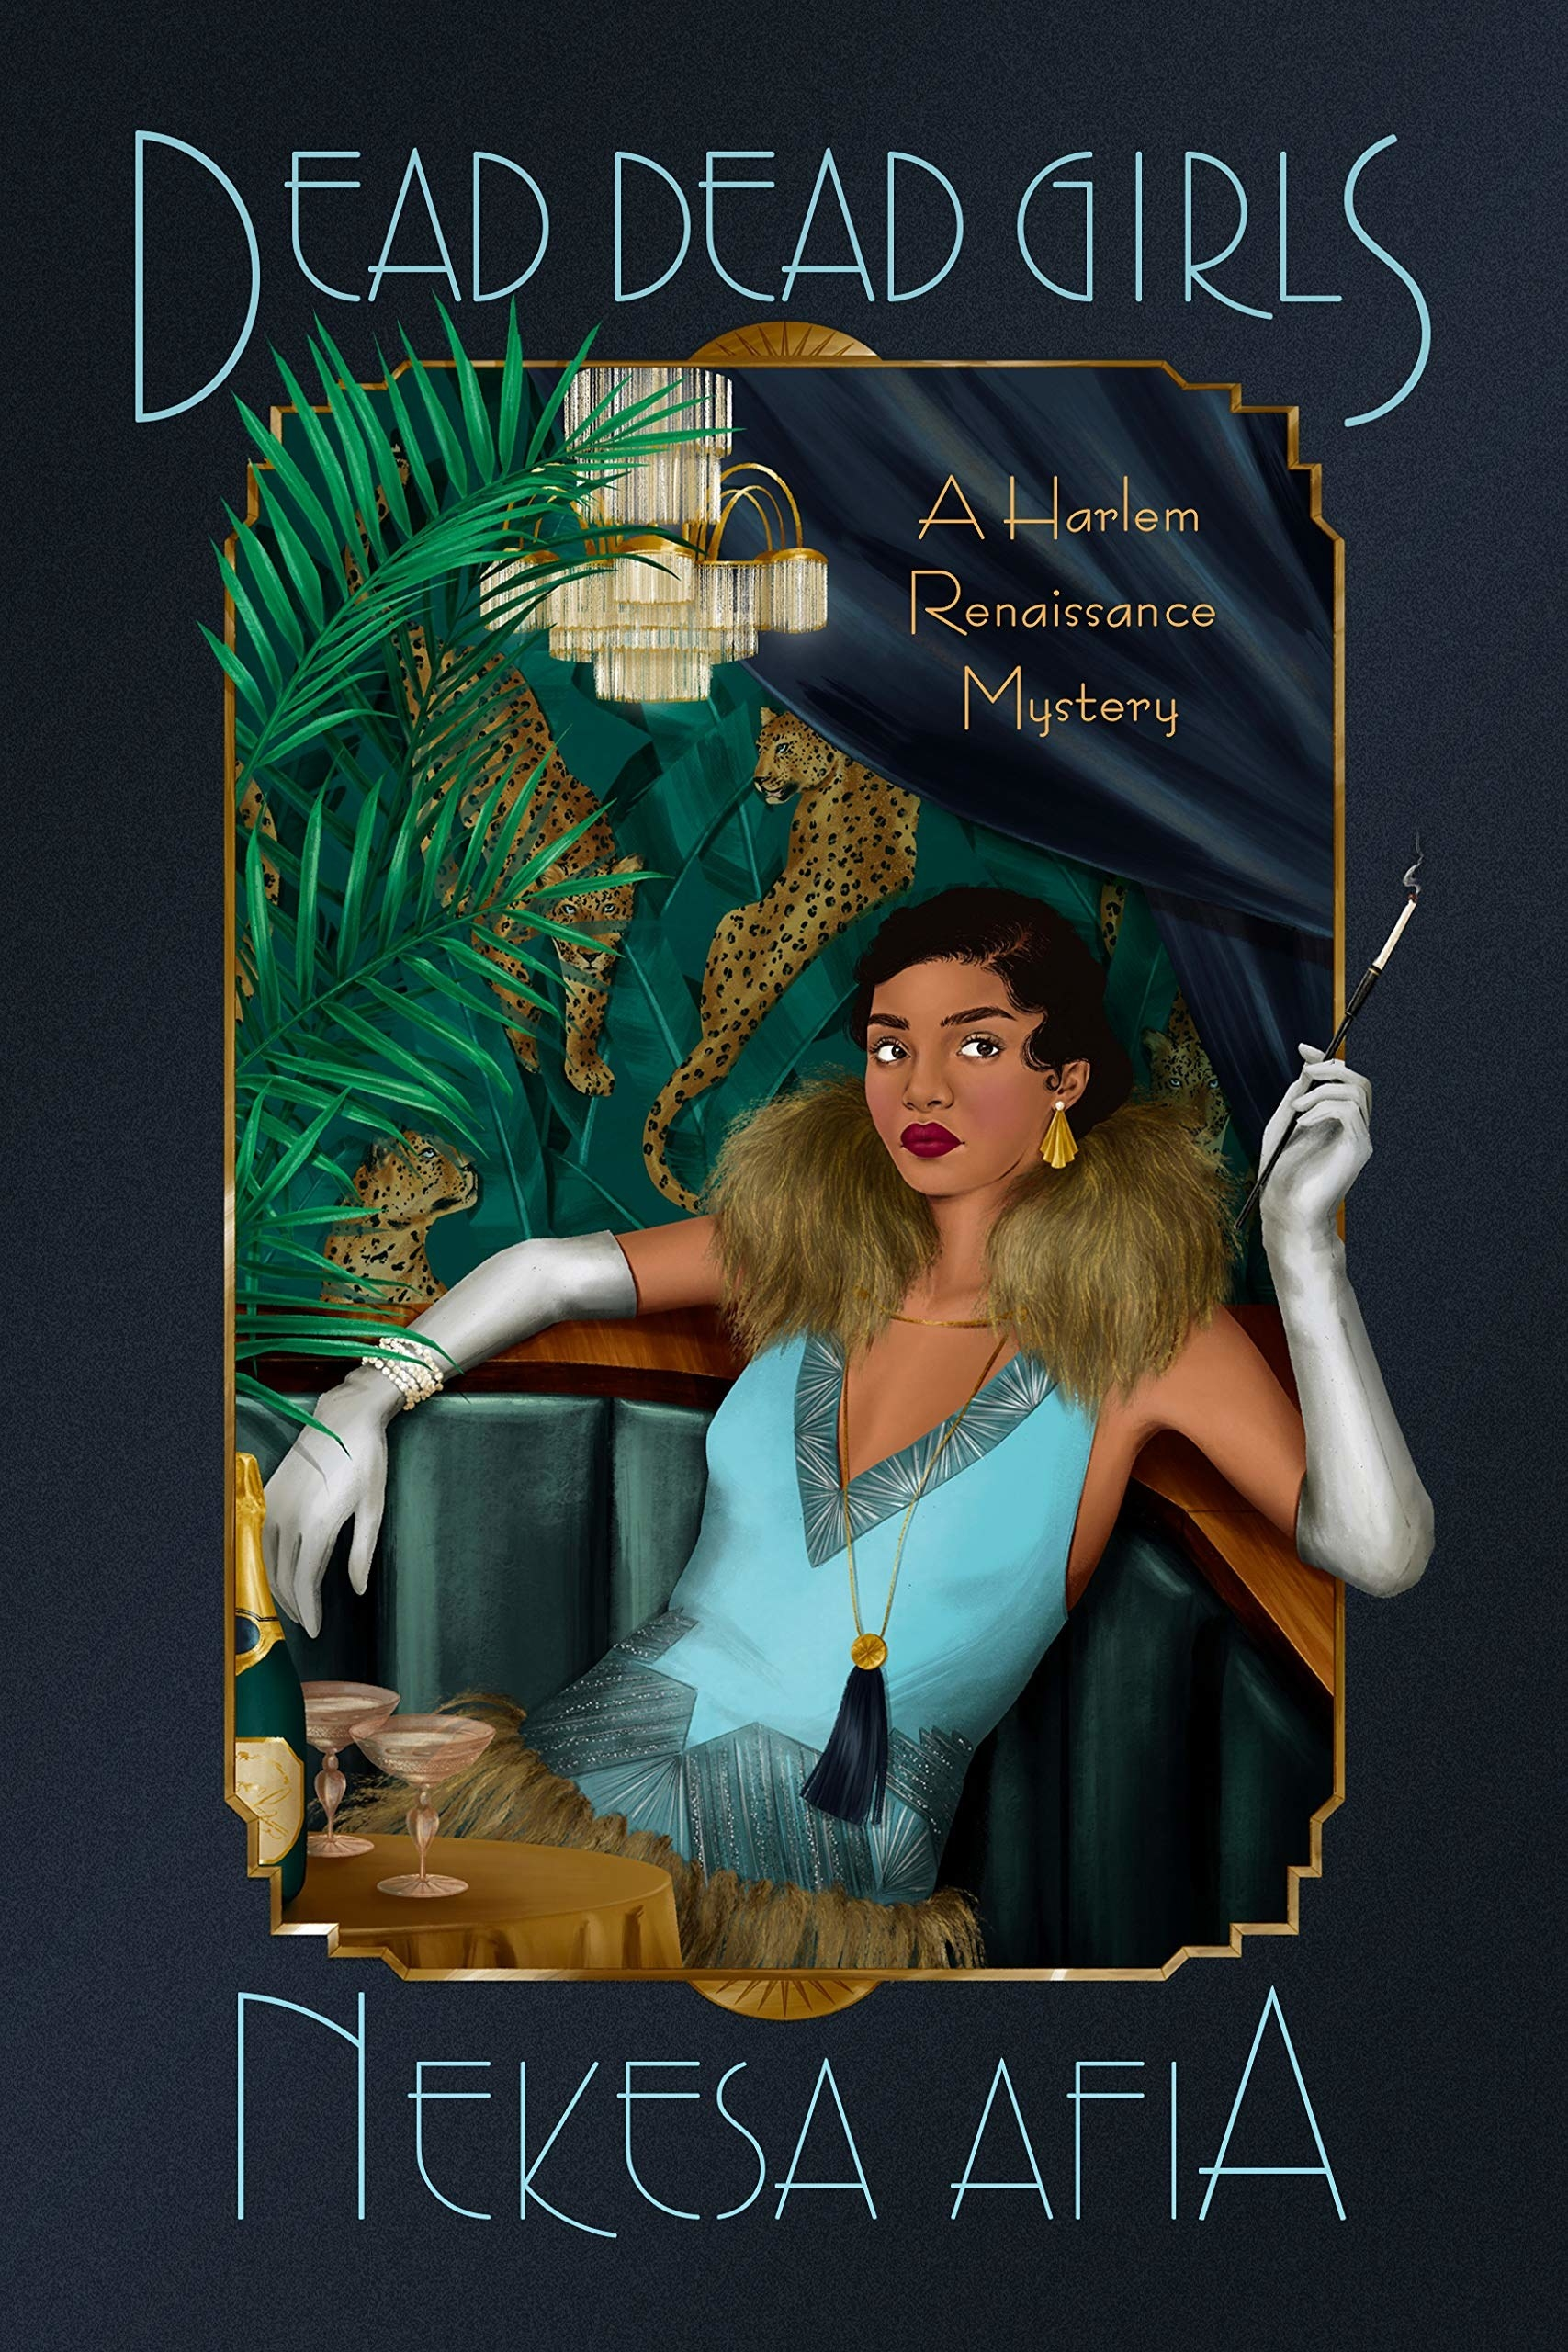 the book cover with a woman in '20s Flapper-inspired dress